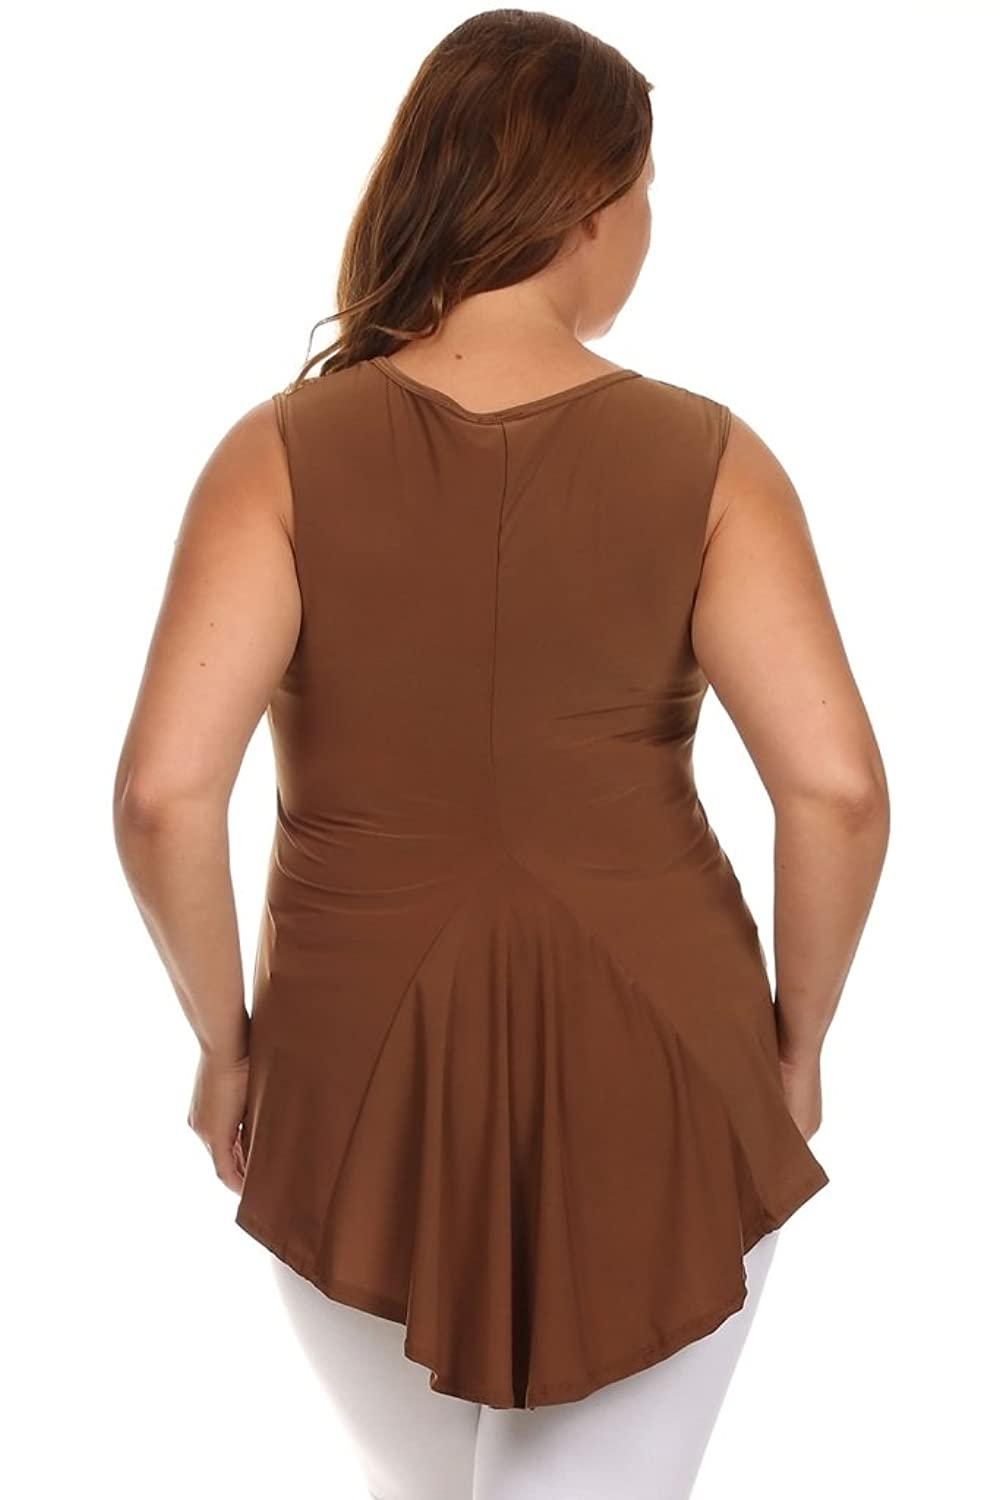 CANARI New Women's Plus Size Brown Candice Top